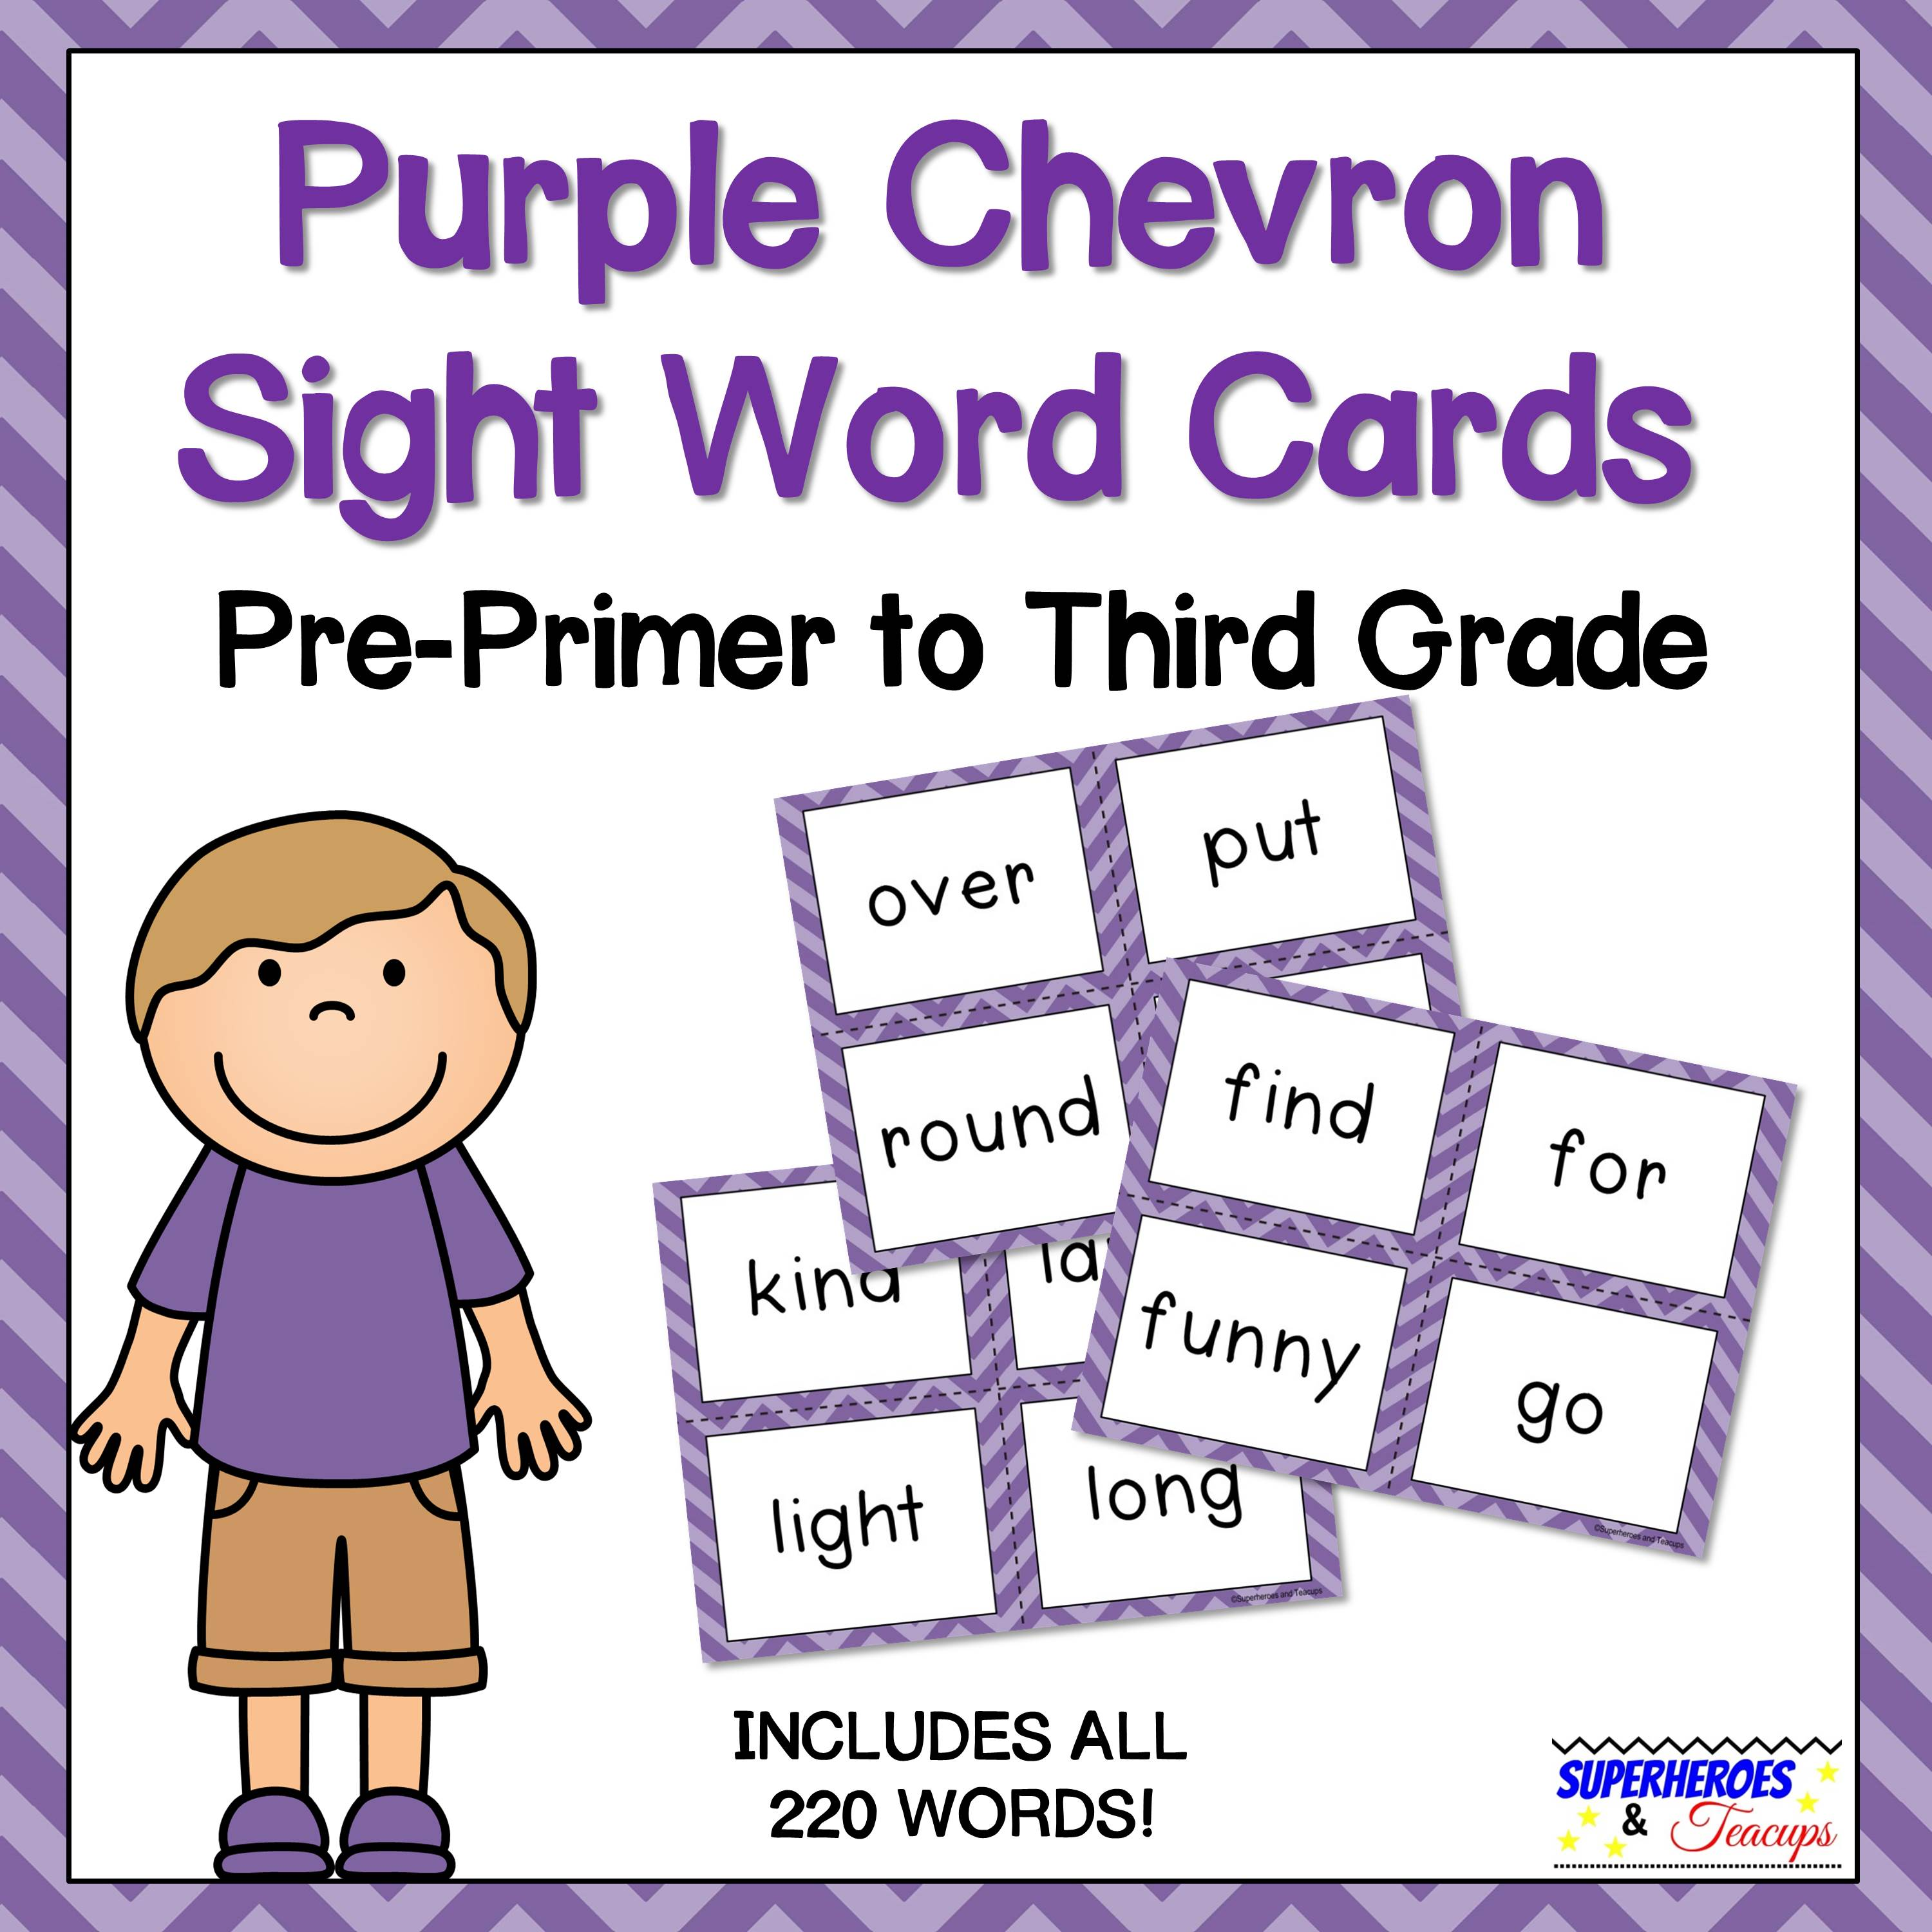 Purple Chevron Sight Word Cards for Early Readers